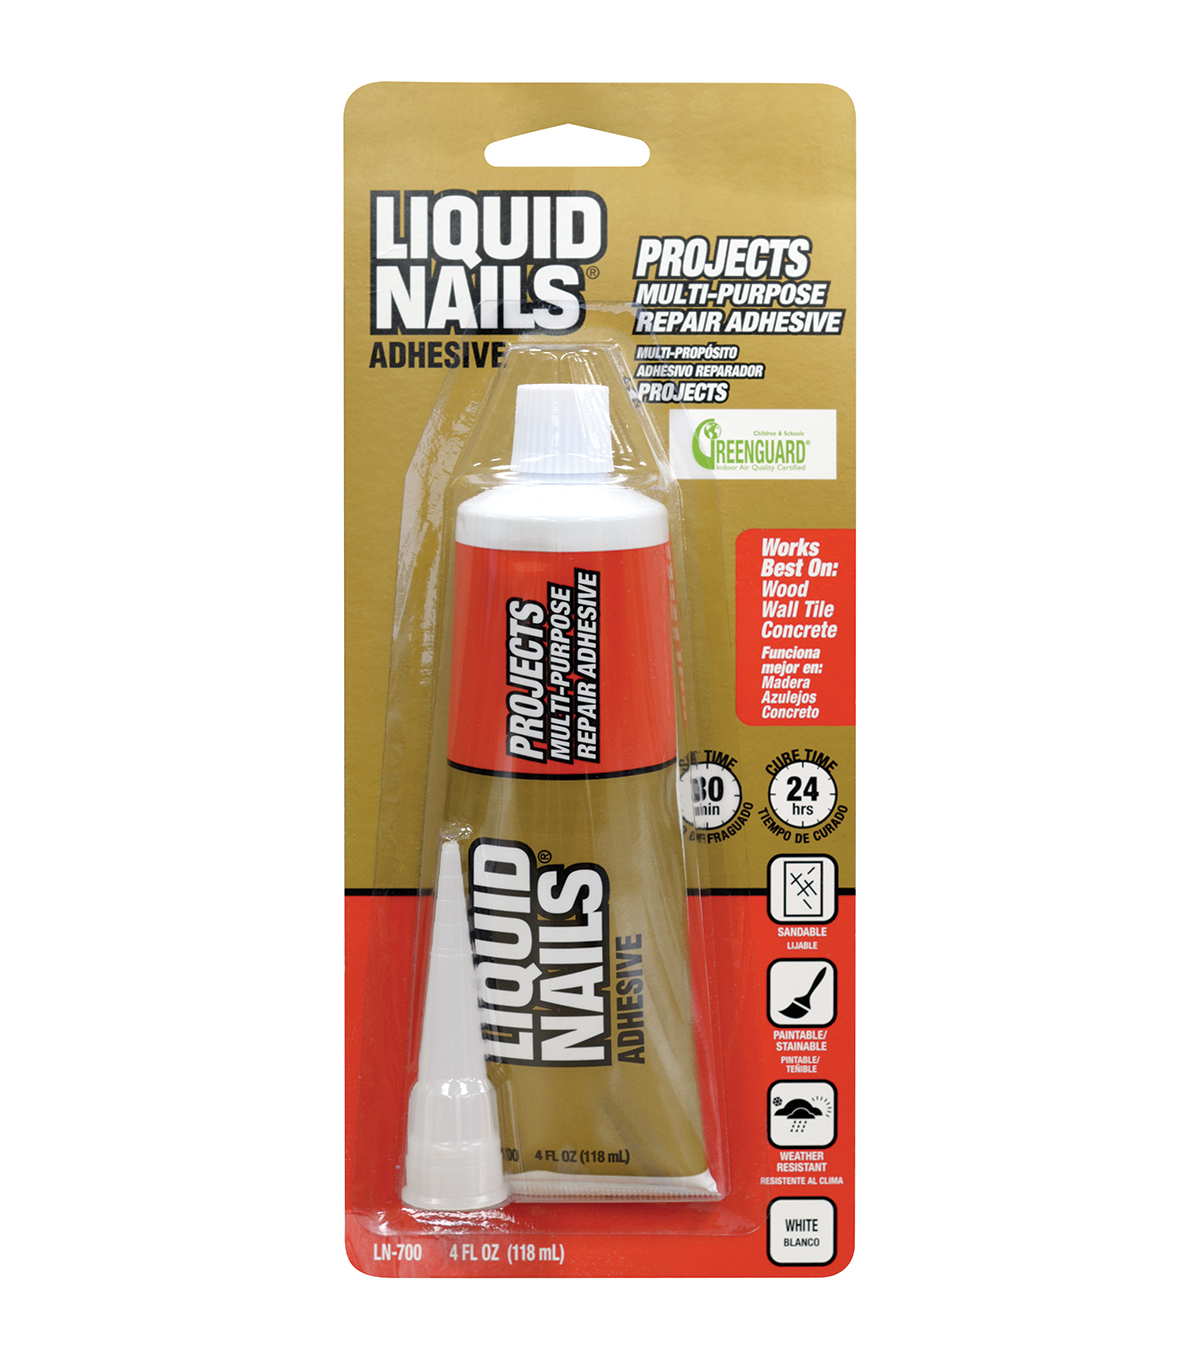 M-D Hobby & amp; amp;amp; Craft 4oz Liquid Nails Repair Adhesive-Small Projects